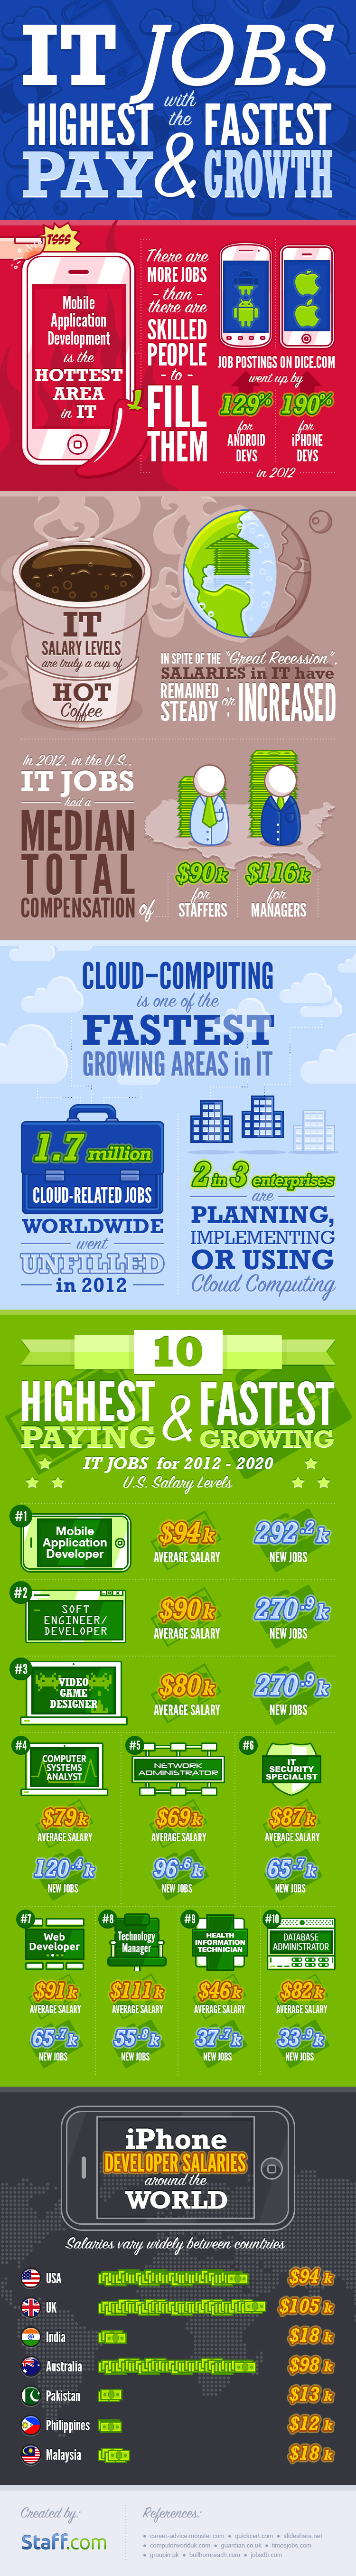 Staff.com - IT Jobs with the Highest Pay and Fastest Growth Infographic